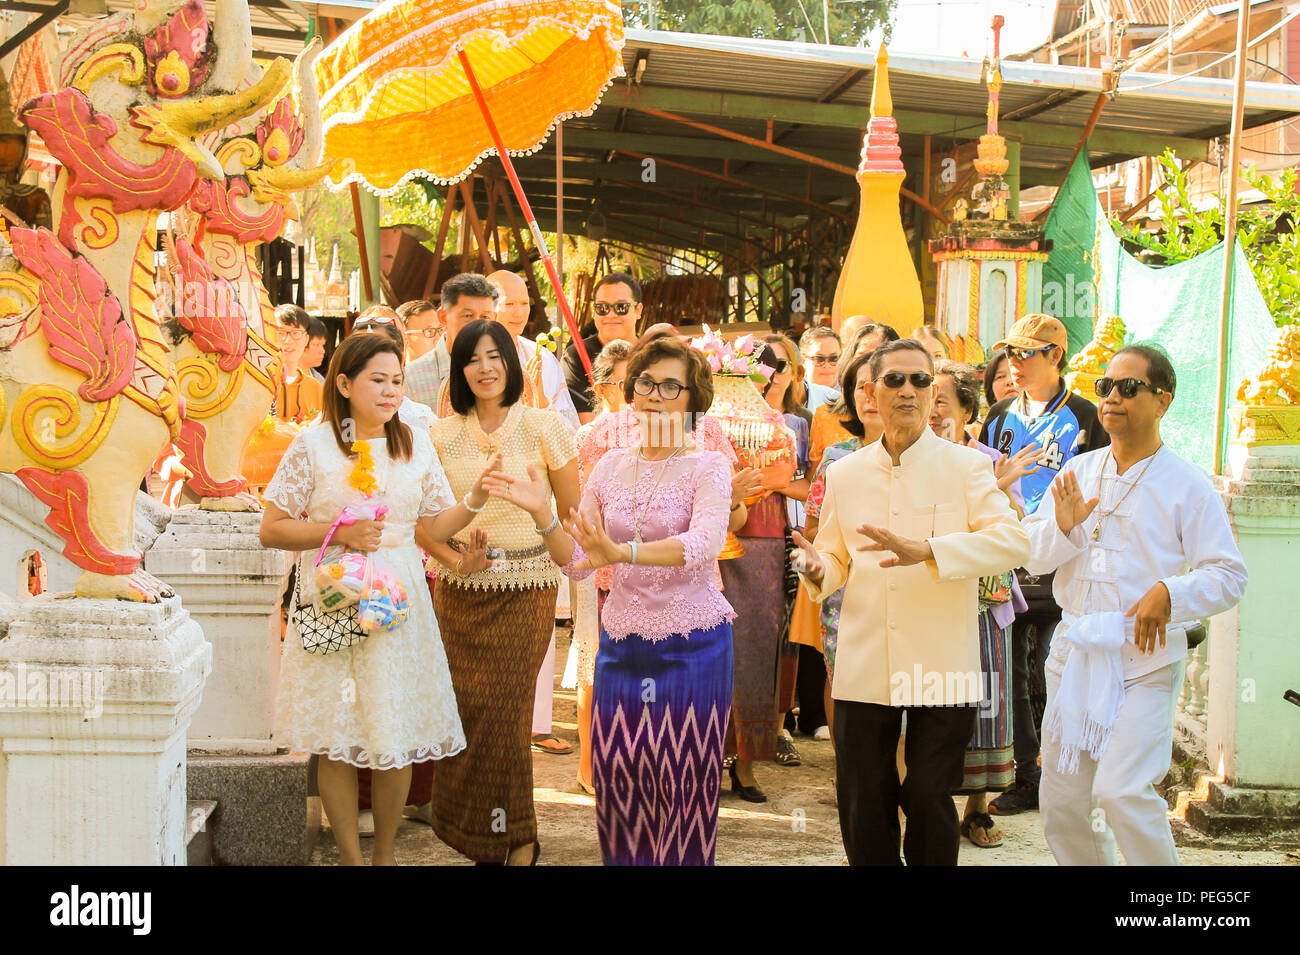 Ubon ratchathani, Thailand -  Group of Thai people seriously dancing together to celebrate their relatives ordaining at Thai temple. - Stock Image